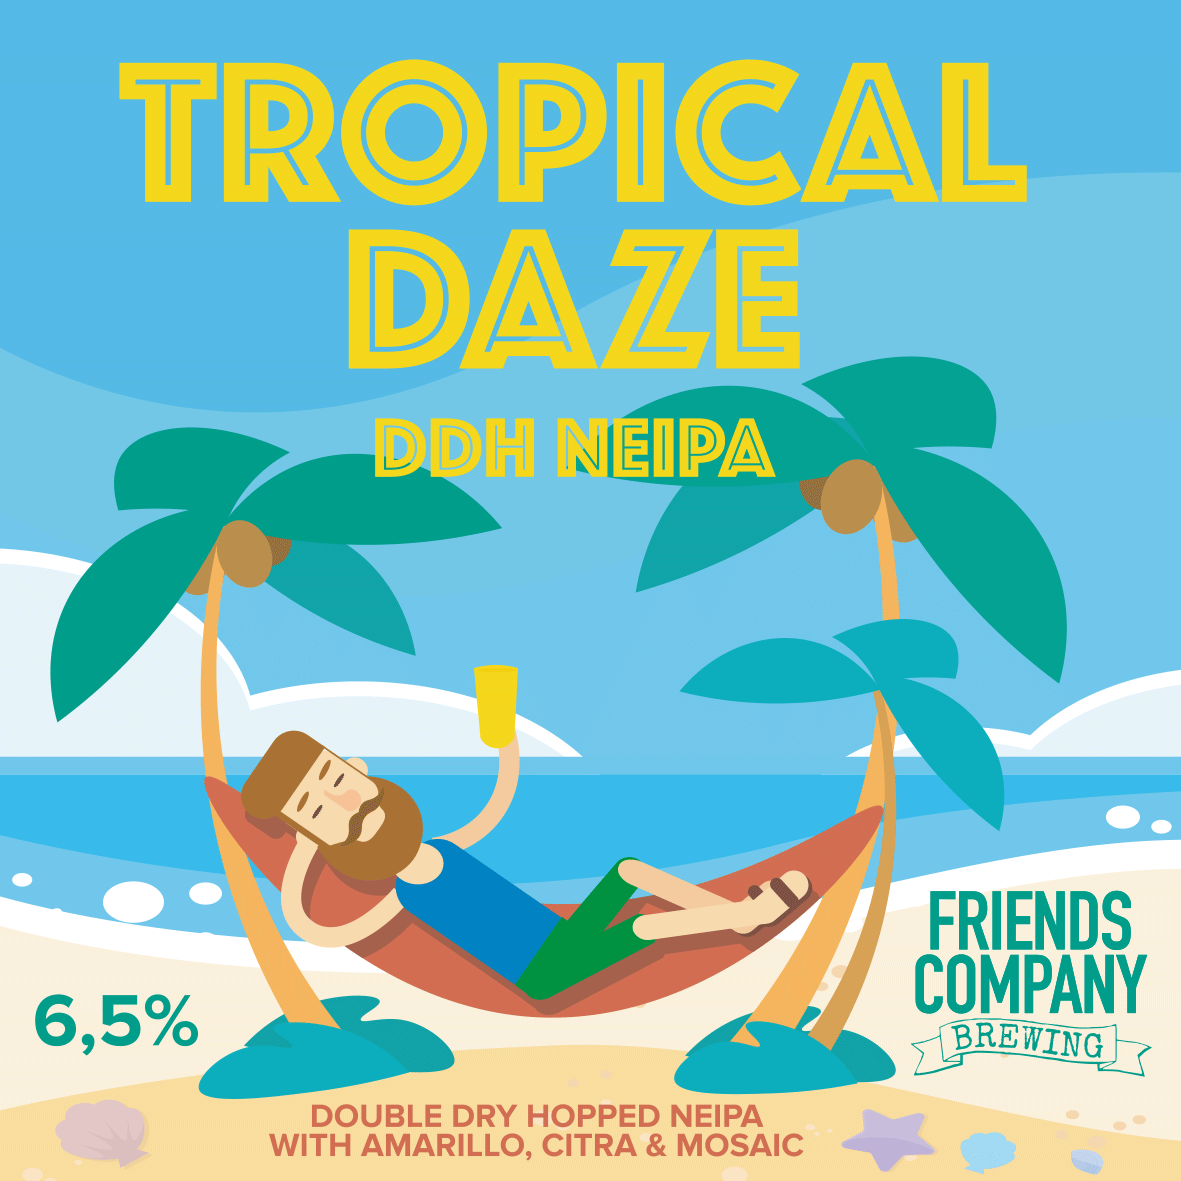 Tropical-Daze-IPA-100x100mm